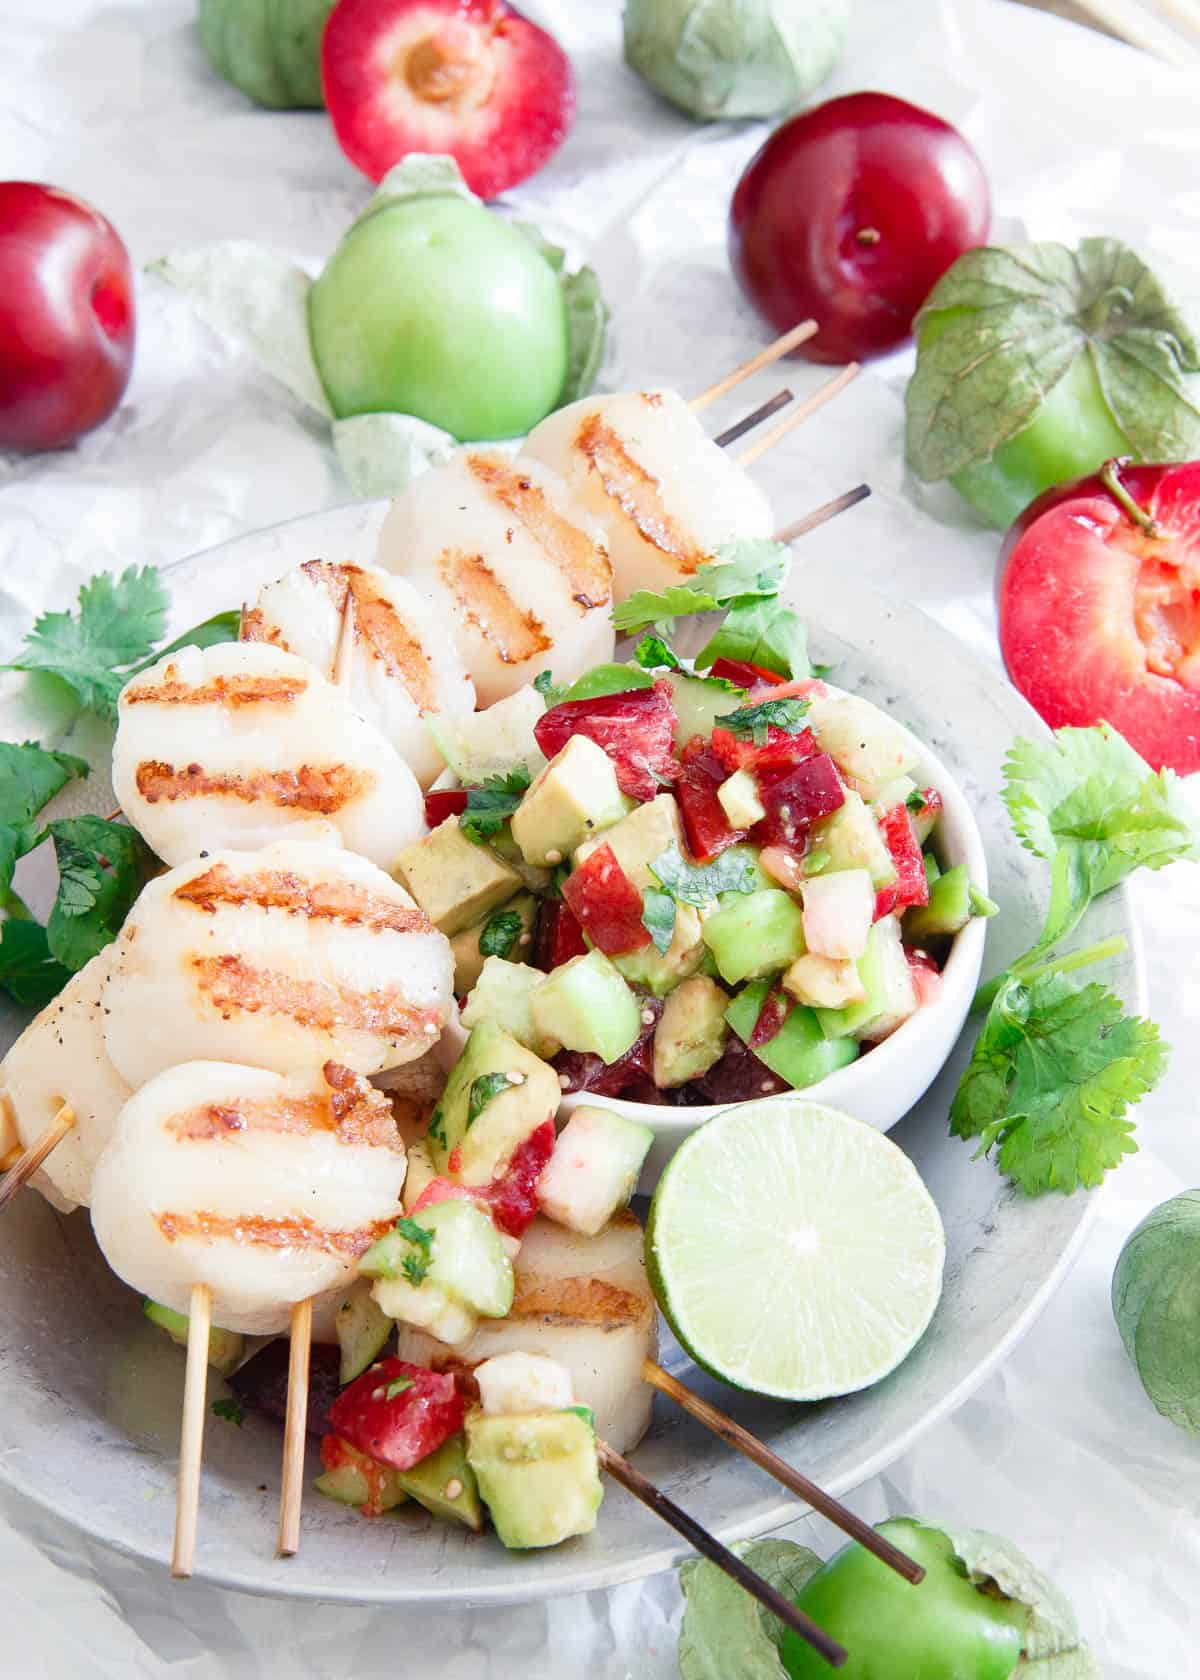 These grilled scallops are simply prepared and topped with a fresh summery tomatillo plum salsa for a delicious light meal.